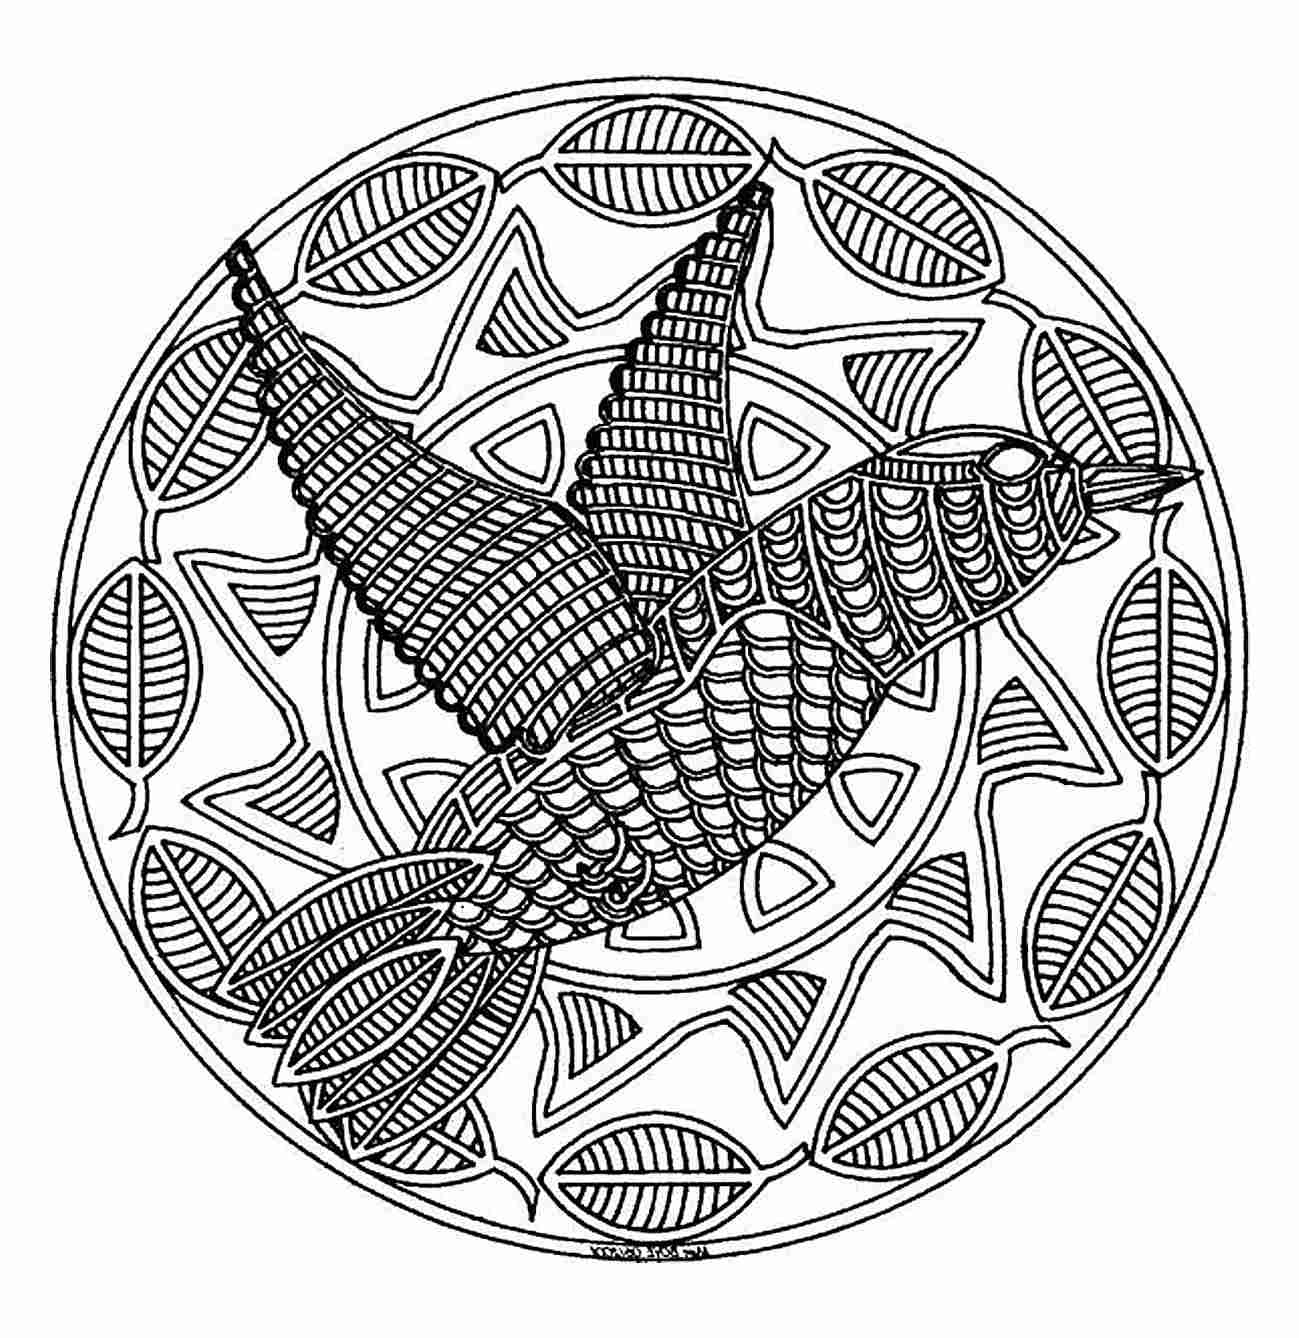 1075 Free Printable Mandala Coloring Pages For Adults